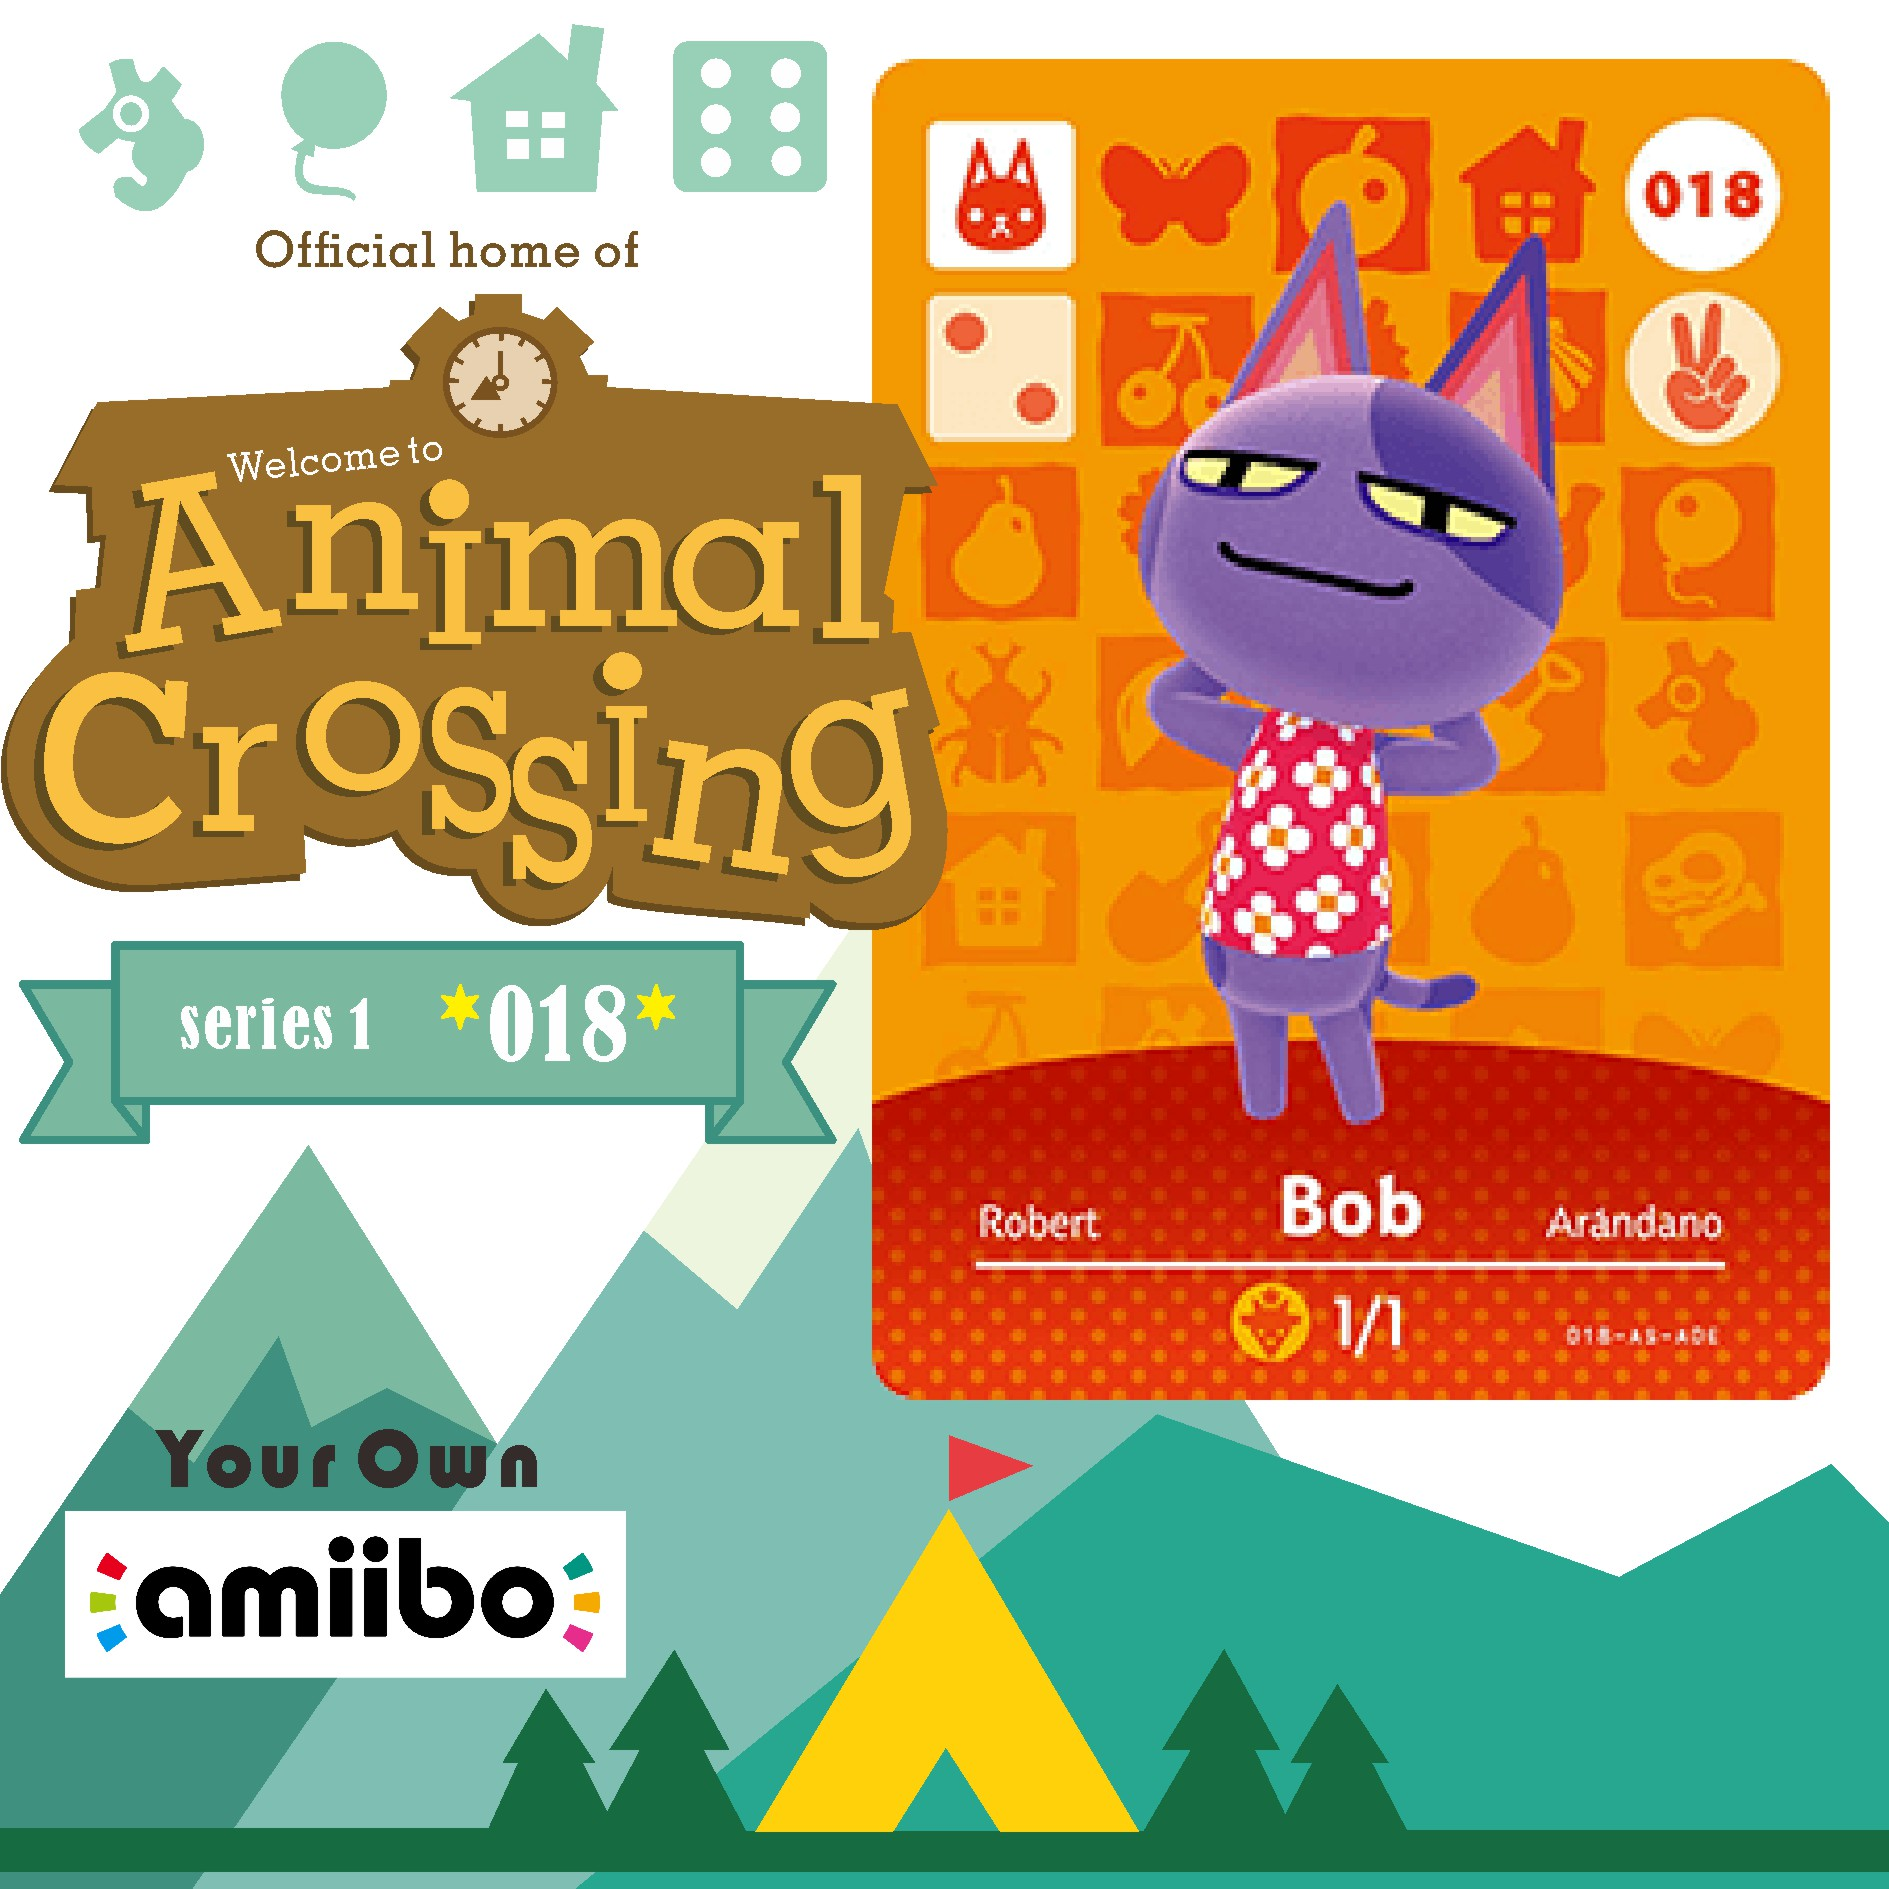 018 Bob Animal Crossing Cross Card Amiibo Card Amiibo Animal Crossing Game Card New Horizons Animal Crossing Welcome Amiibo